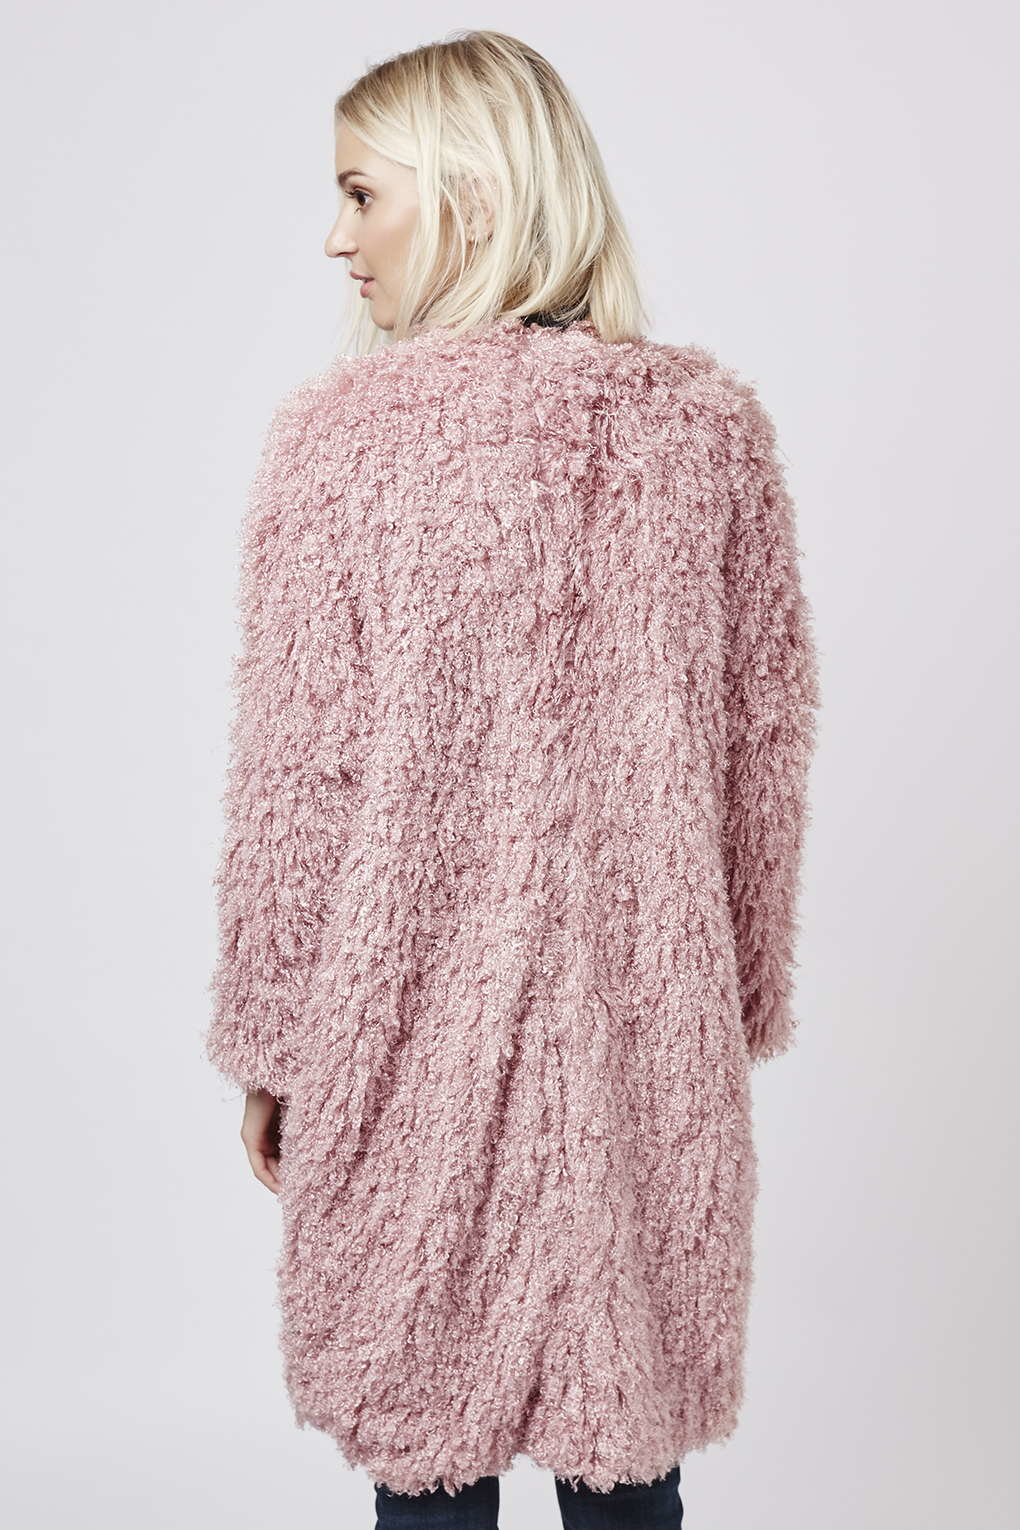 Topshop Aviation Faux Fur Coat By Goldie in Pink | Lyst